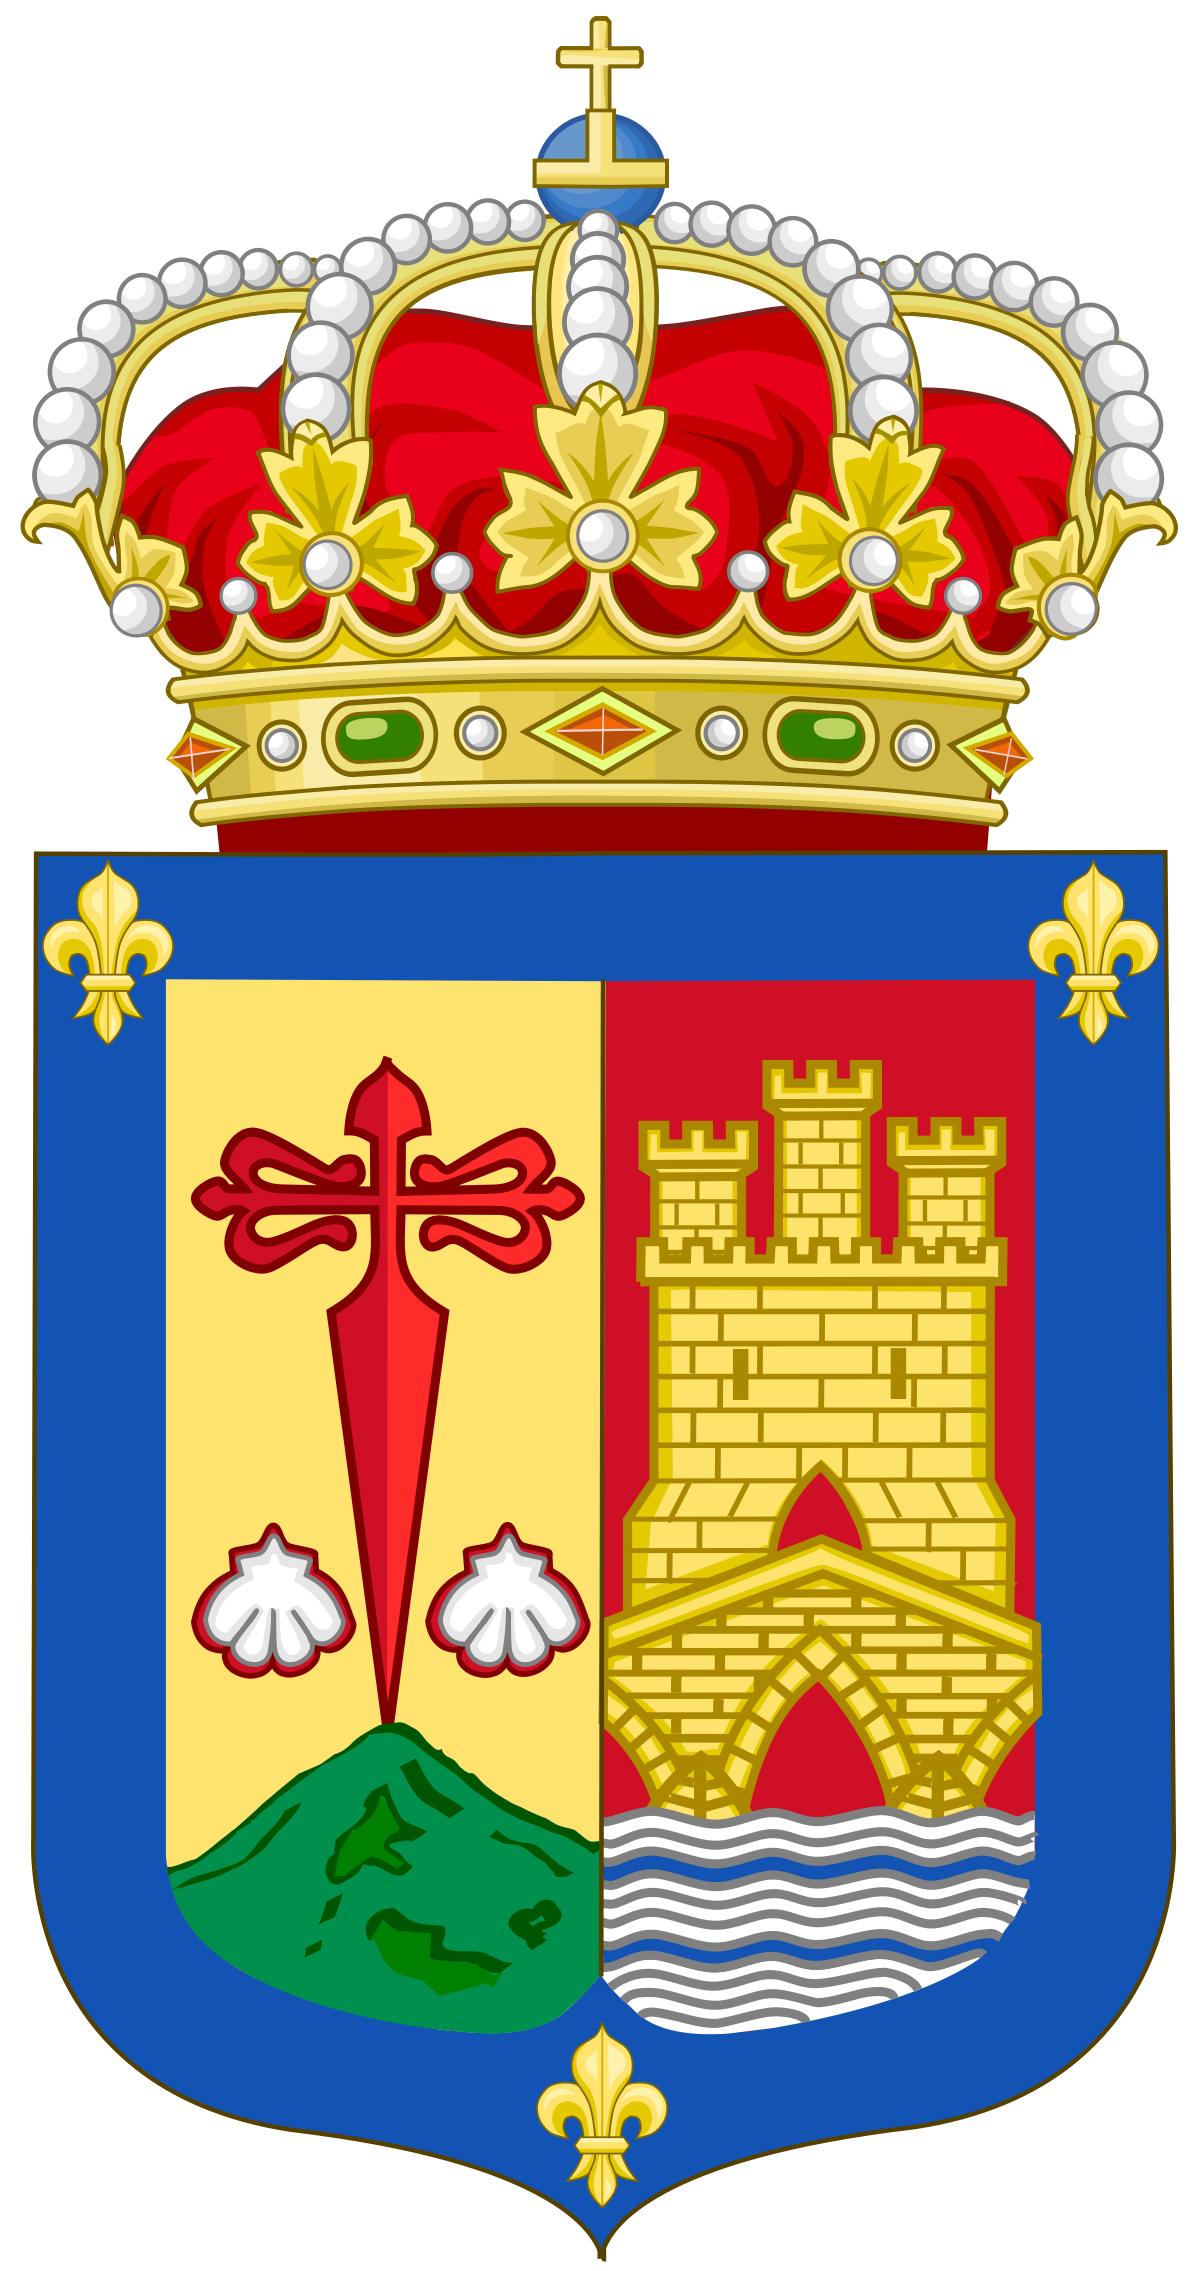 Coat of arms of La Rioja